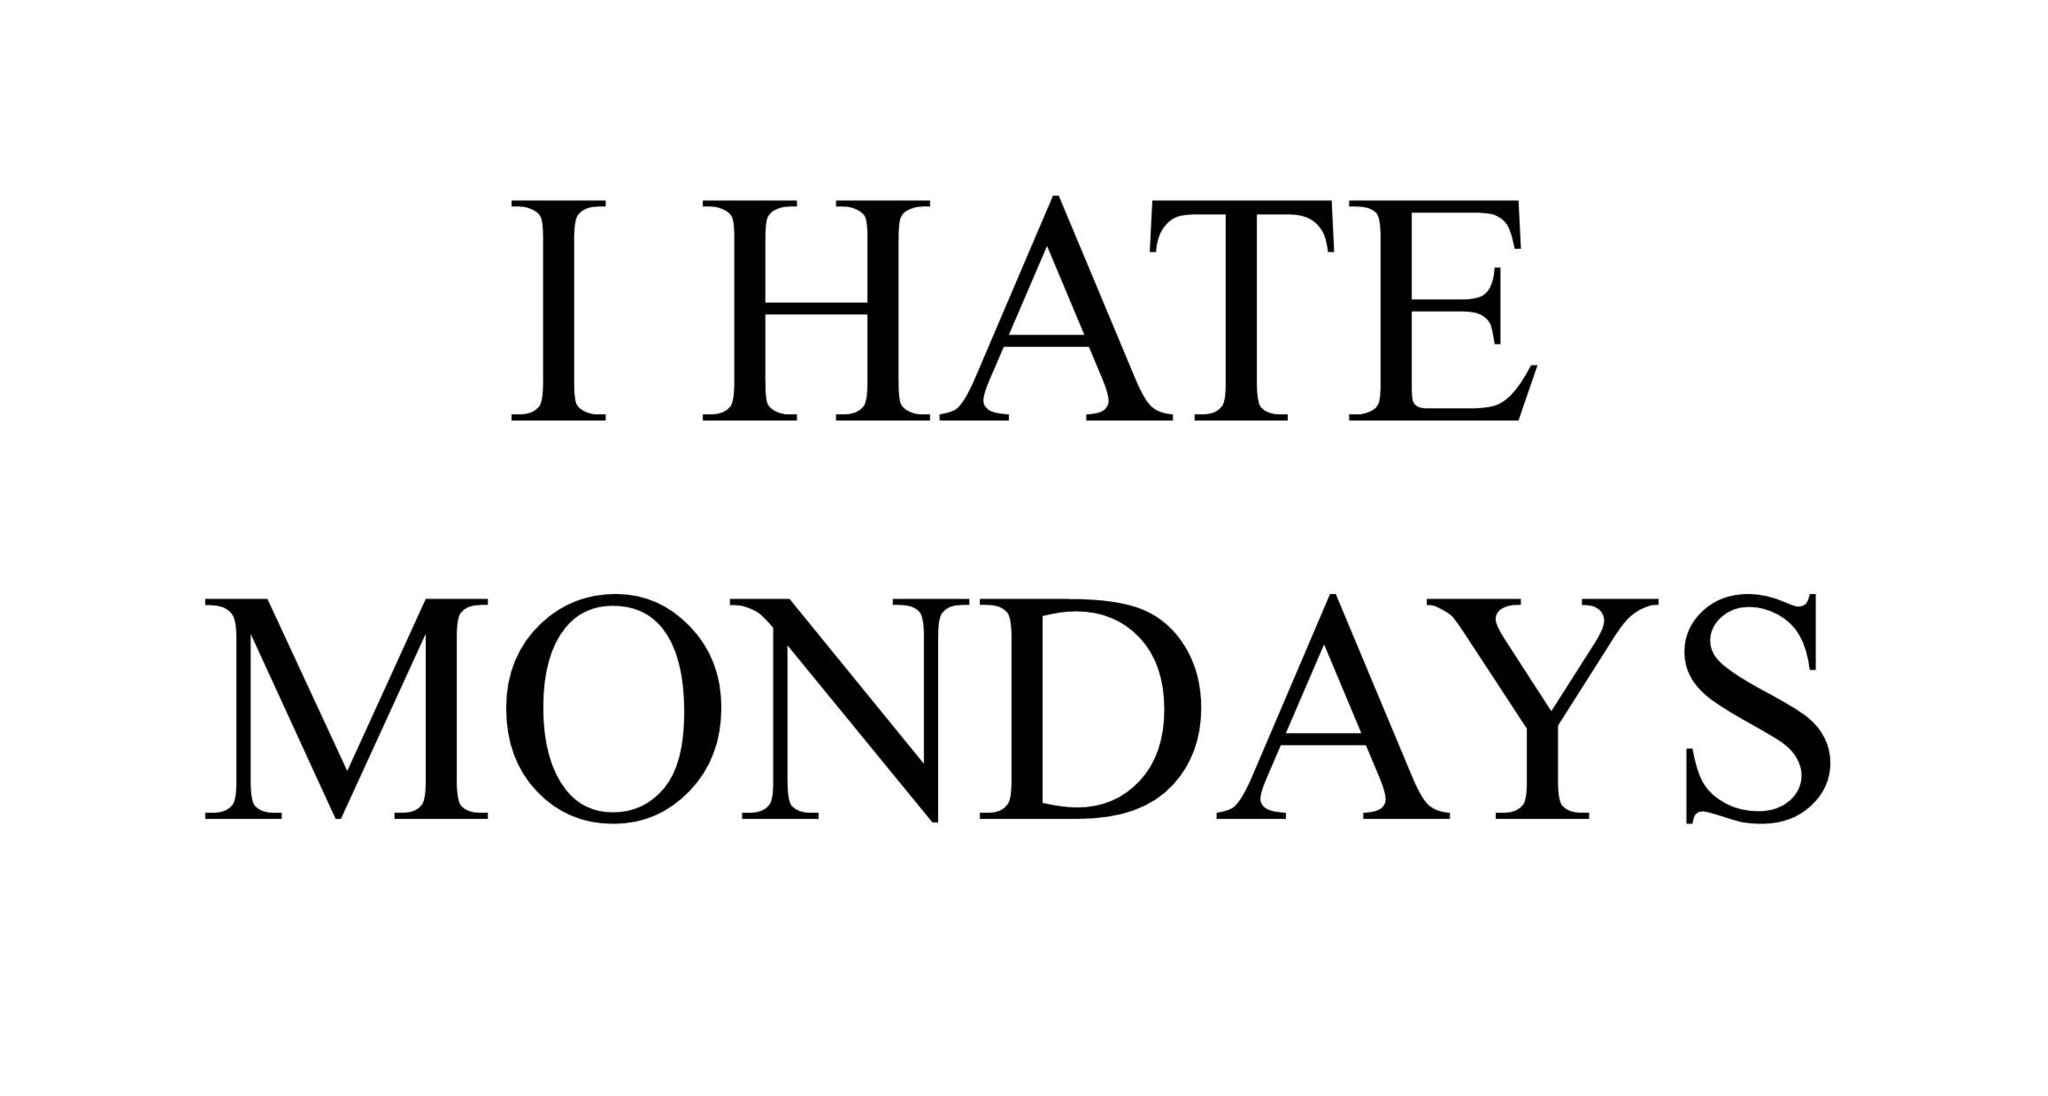 We aren't suffering along—and here are 15 hilarious tweets to prove you're not the only one who despises Mondays! (Photo: Archive)